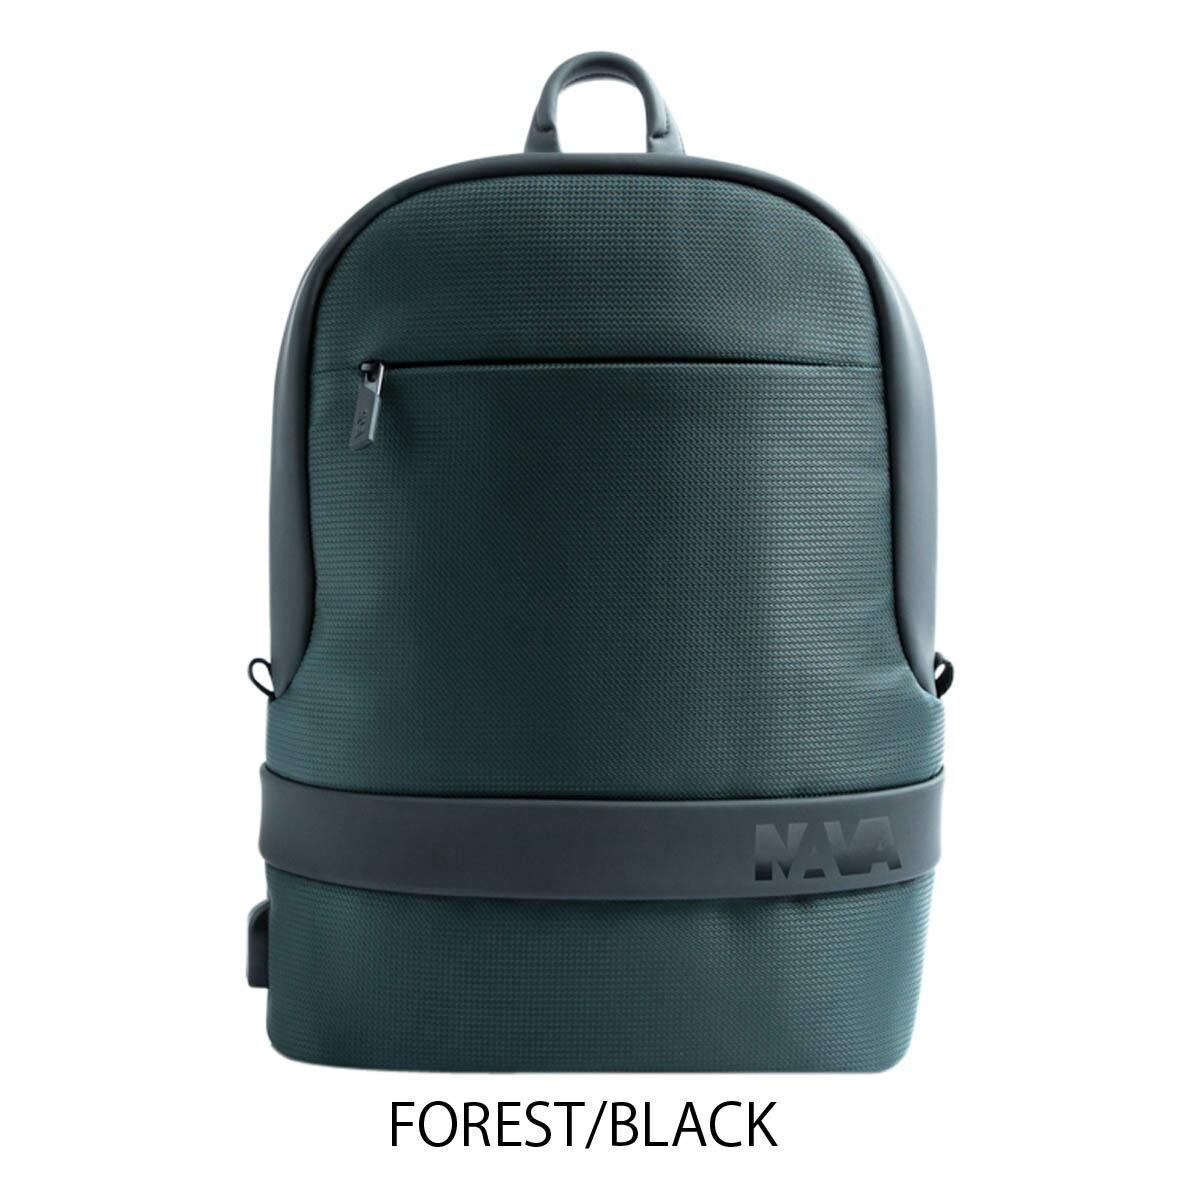 FOREST/BLACK